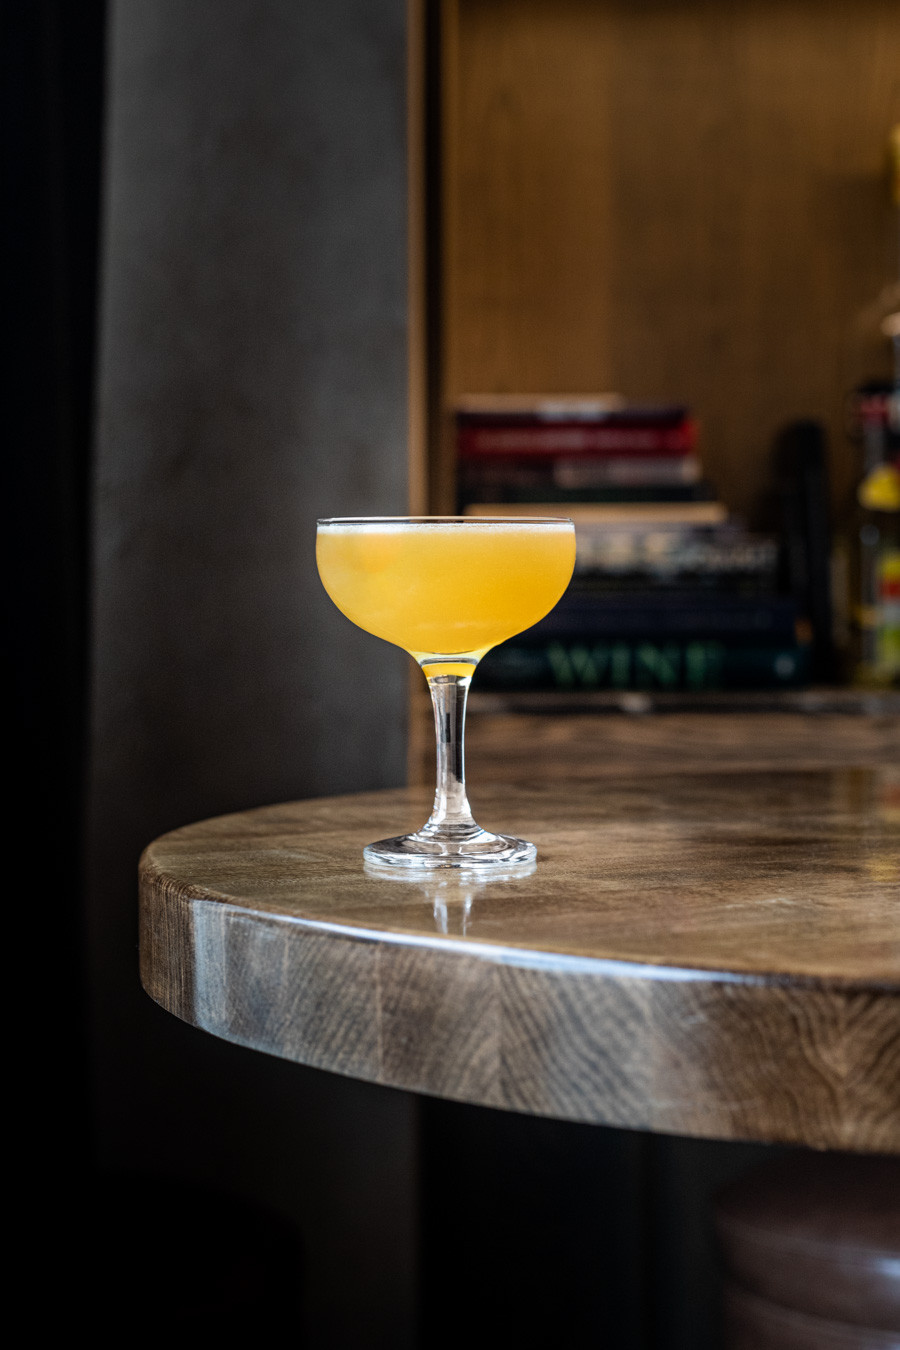 Fully Loaded, a cocktail recipe by Reece Michael Southern